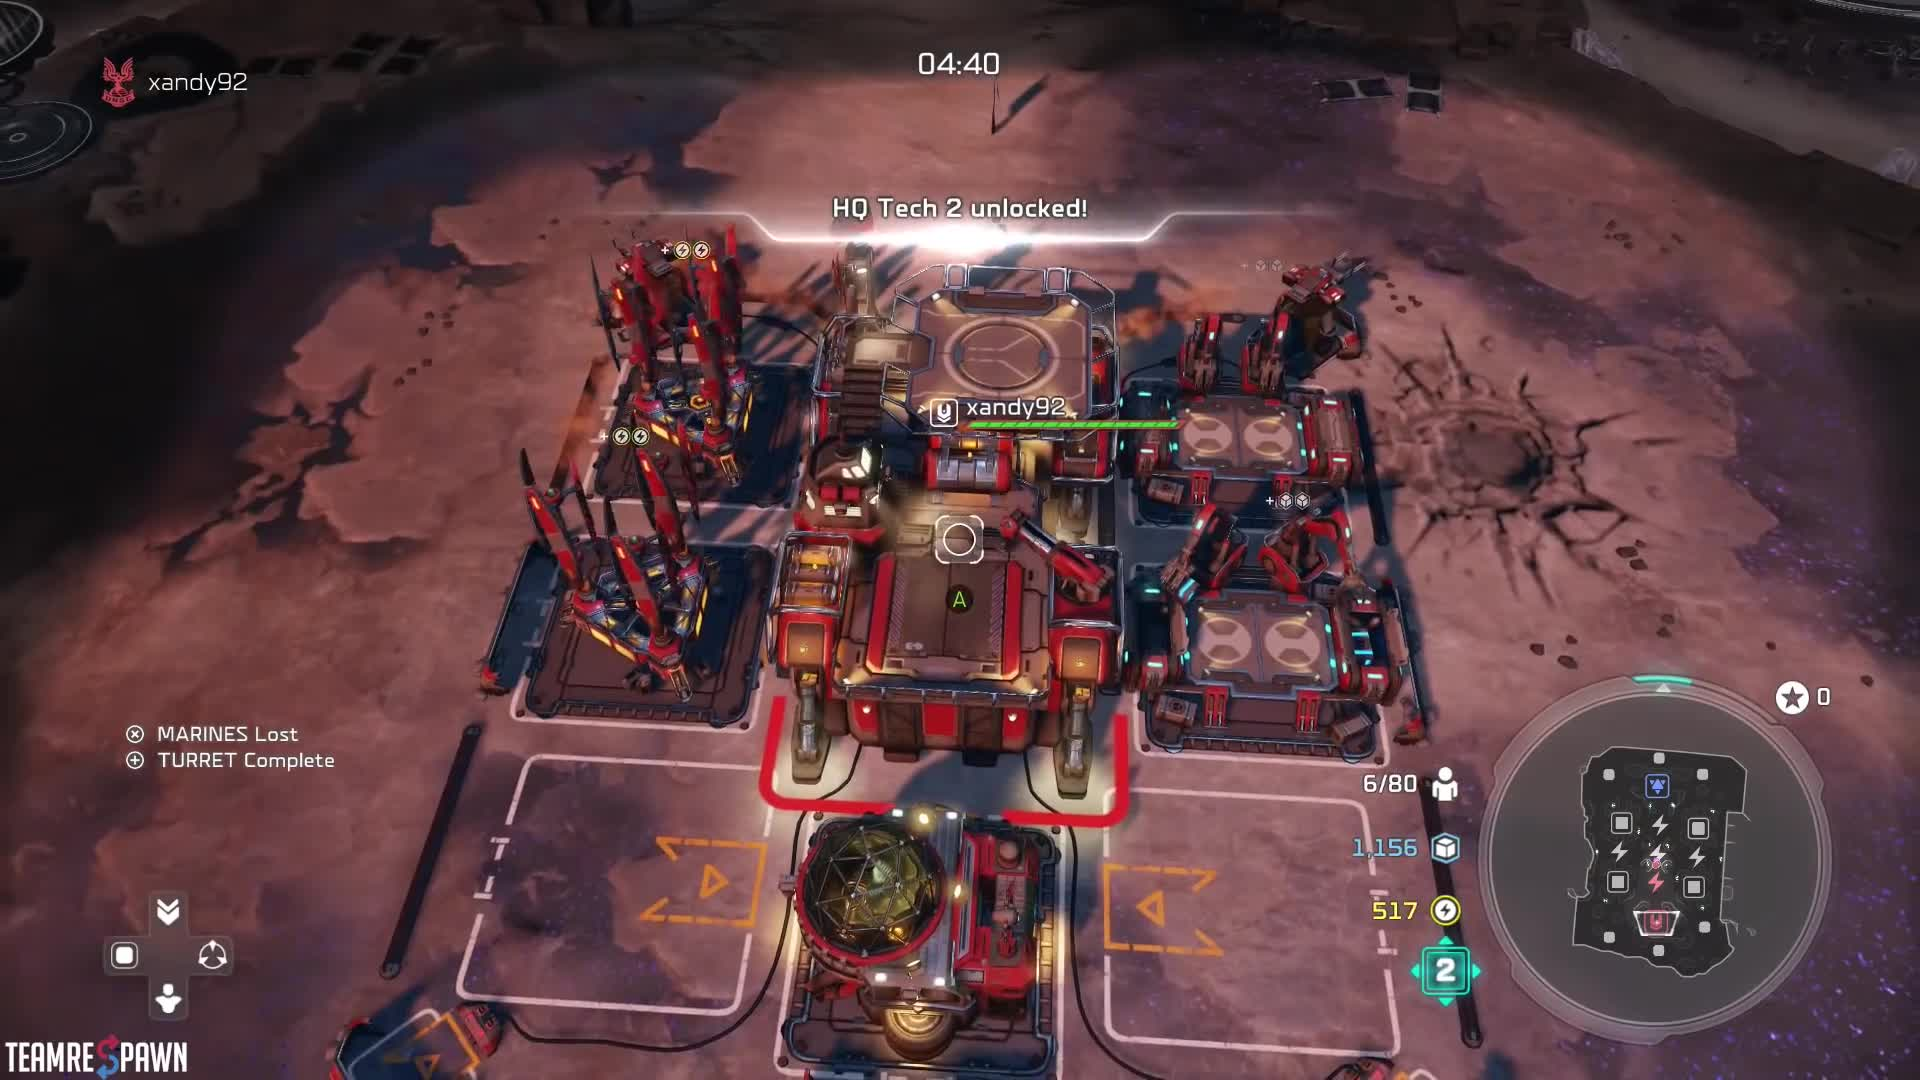 Halo, Halo RTS, Halo Wars, Halo Wars 2, Halo Wars 2 Base Building Strategy, Halo Wars 2 Strategy, RTS, Real-Time Strategy, Strategy, Team Respawn, Best Initial Base Build Order   Halo Wars 2 Strategy GIFs